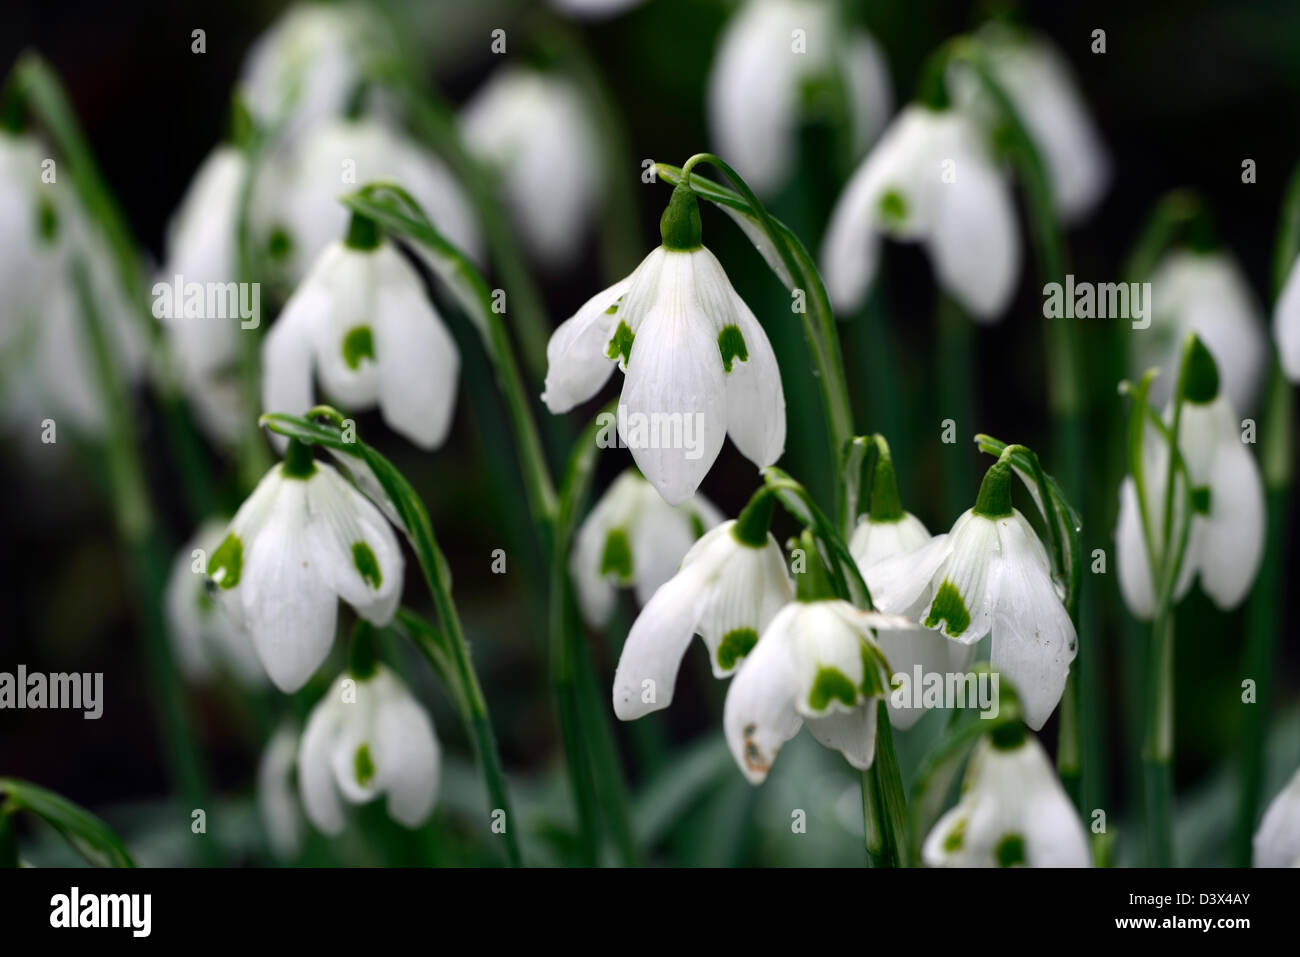 Flowers that bloom in the winter - Stock Photo Galanthus Cordelia Snowdrop Snowdrops Winter Closeup Plant Portraits White Green Markings Flowers Blooms Bloom Flower Spring